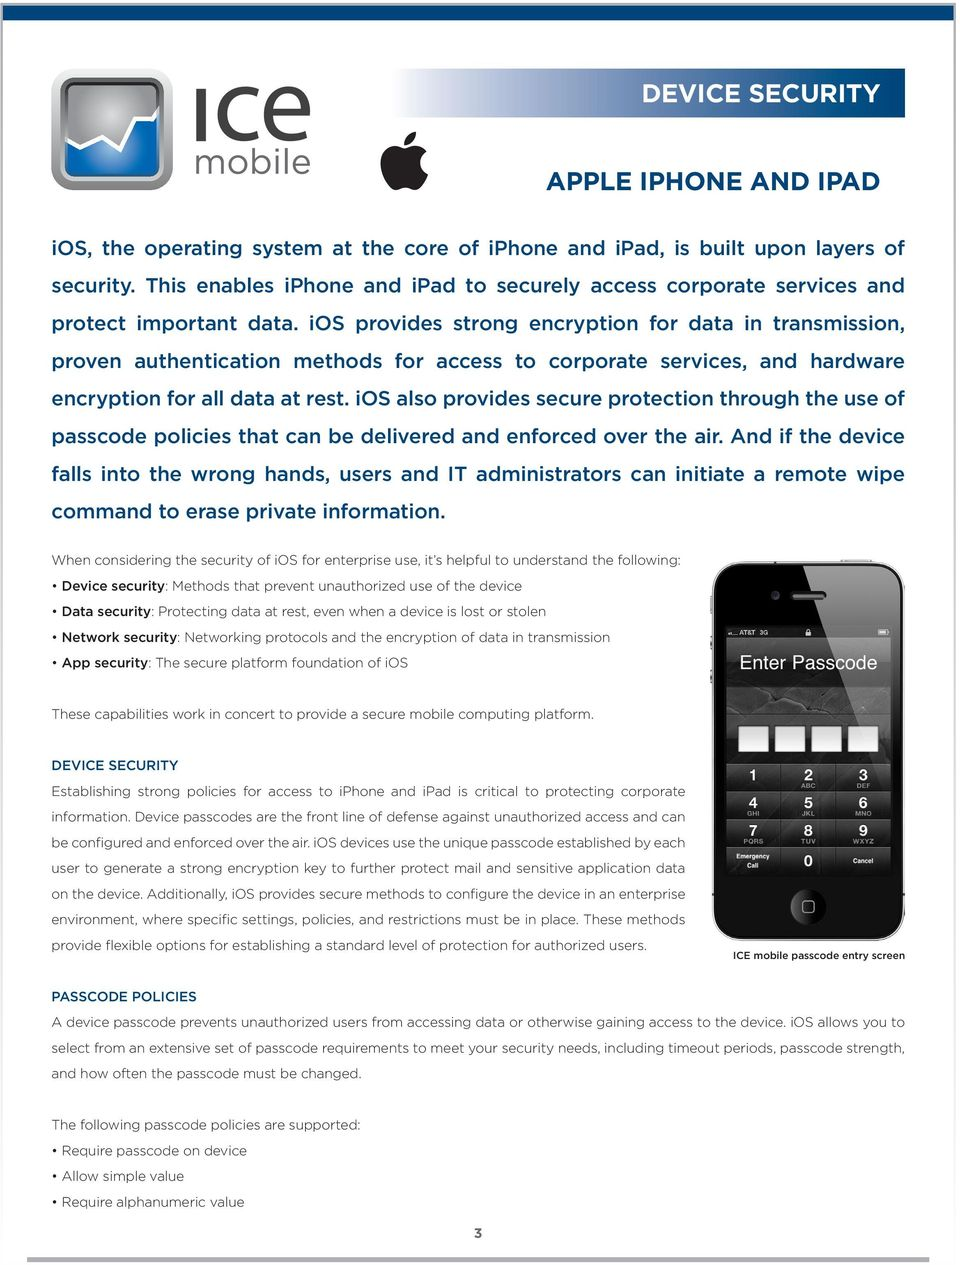 ios provides strong encryption for data in transmission, proven authentication methods for access to corporate services, and hardware encryption for all data at rest.